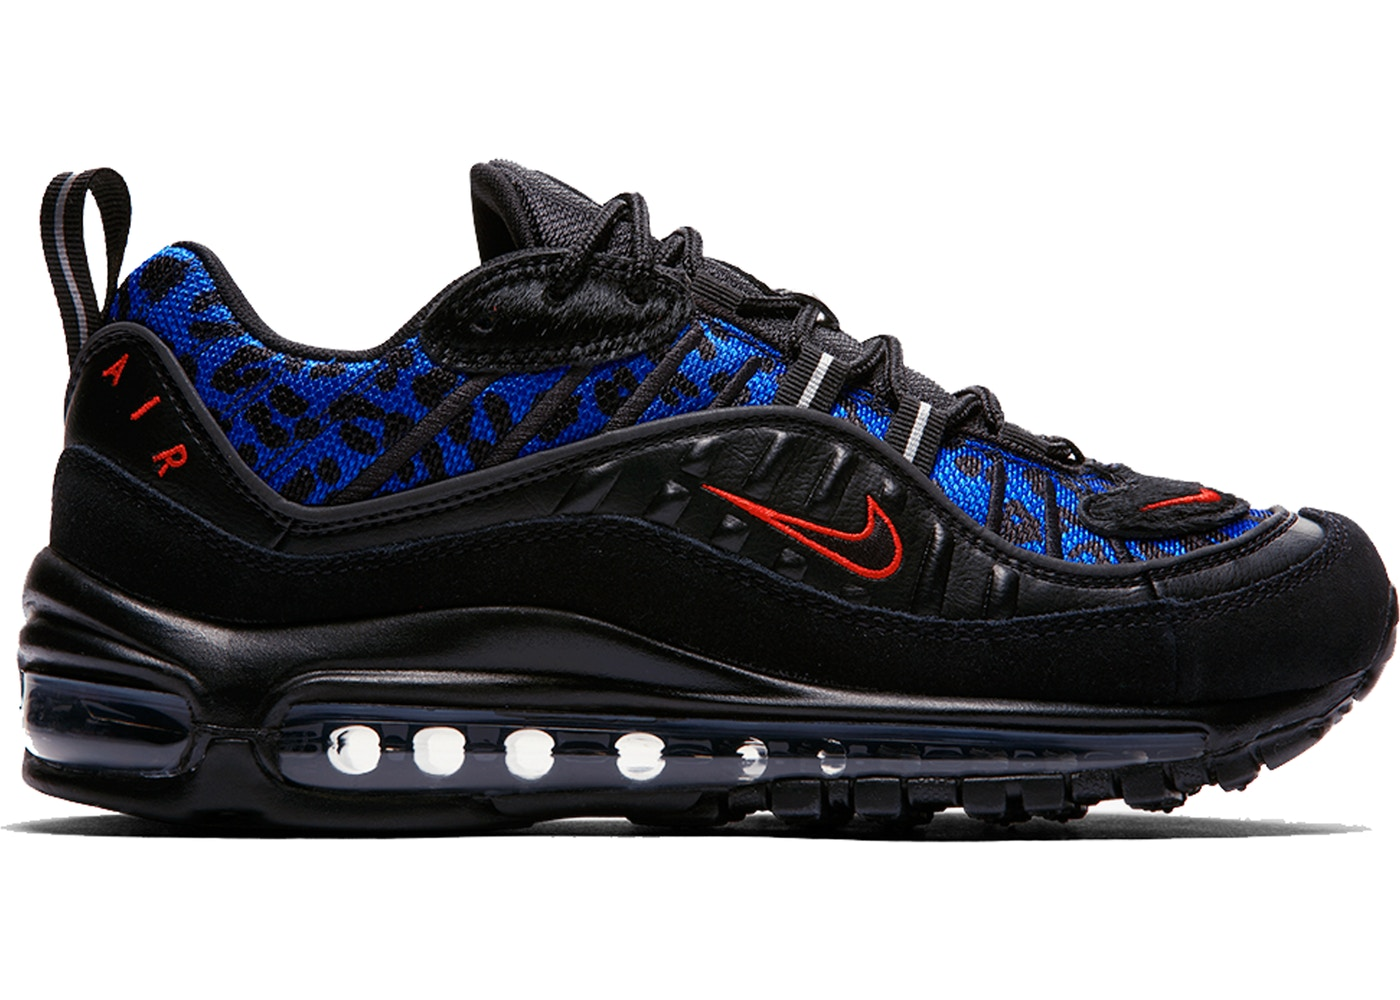 Nike Air Max Modular 98 SI Black White Blue